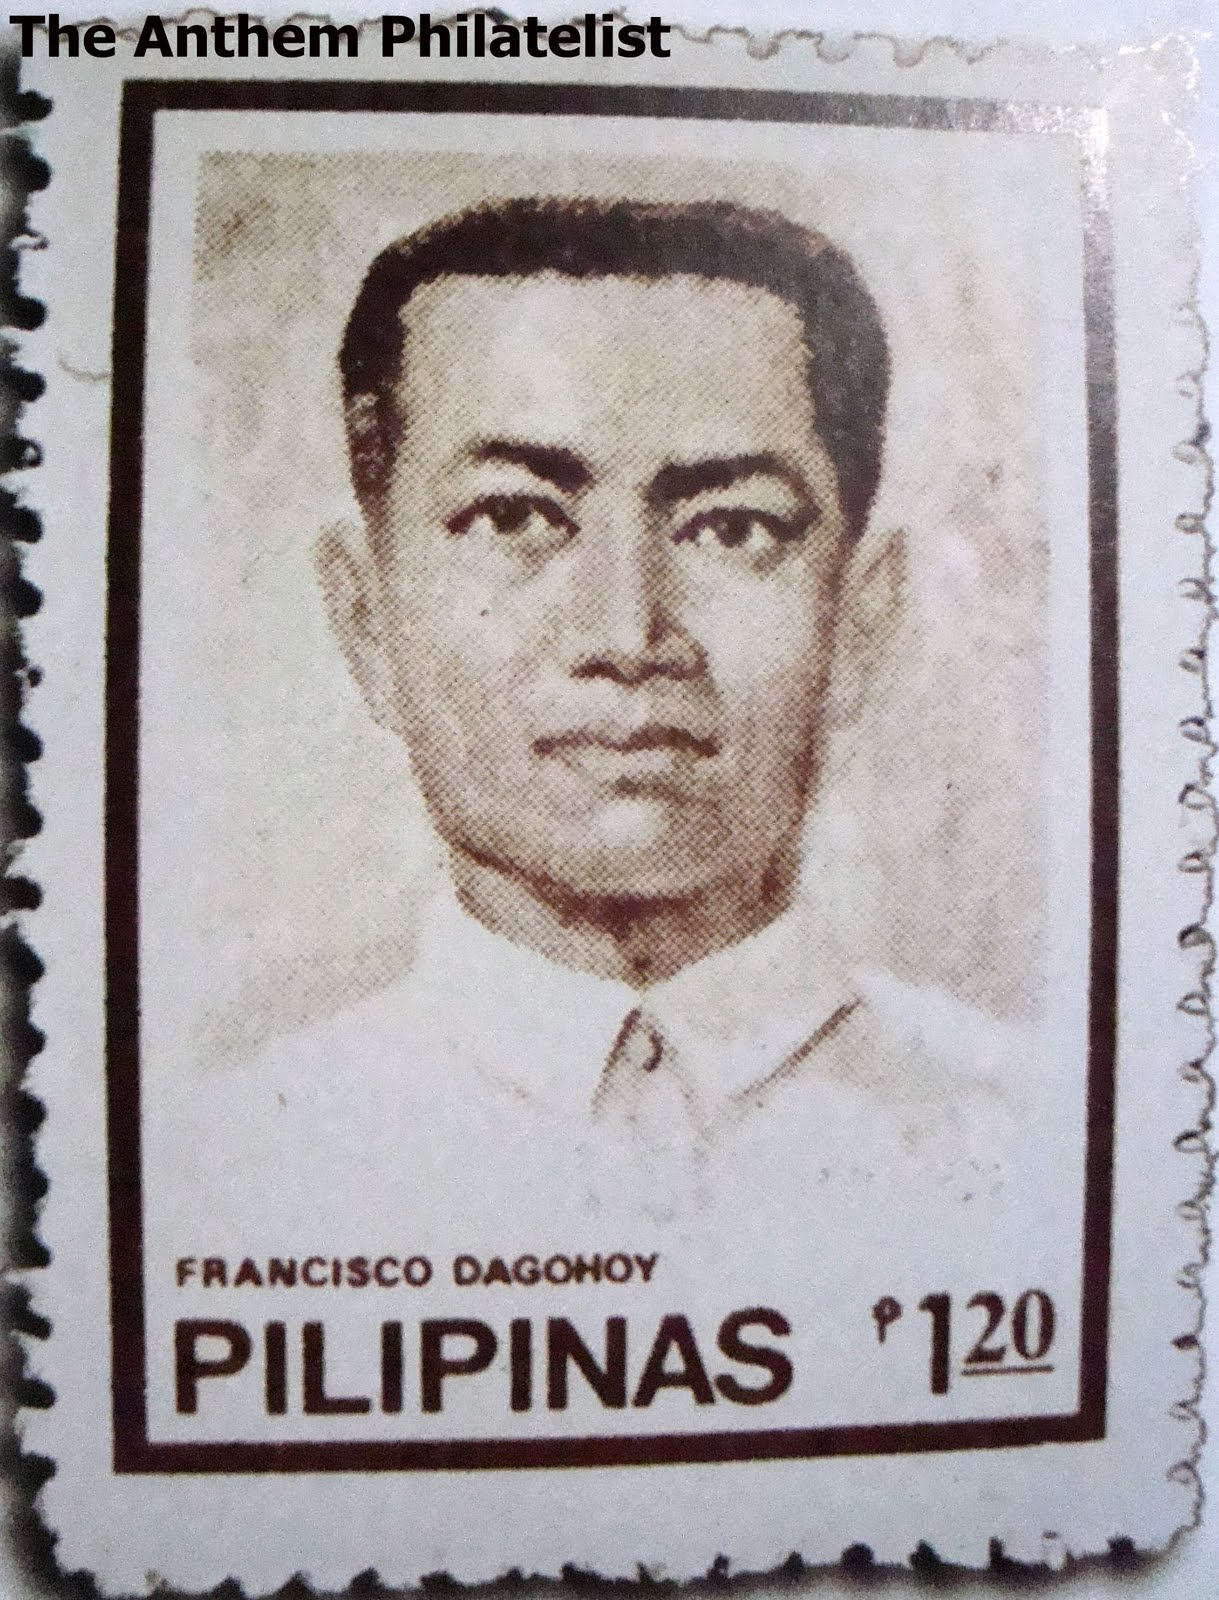 biography of francisco dagohoy Francisco dagohoy, (born francisco sendrijas in 1724) was a boholano who  holds the distinction of having initiated the longest revolt in philippine history, the .